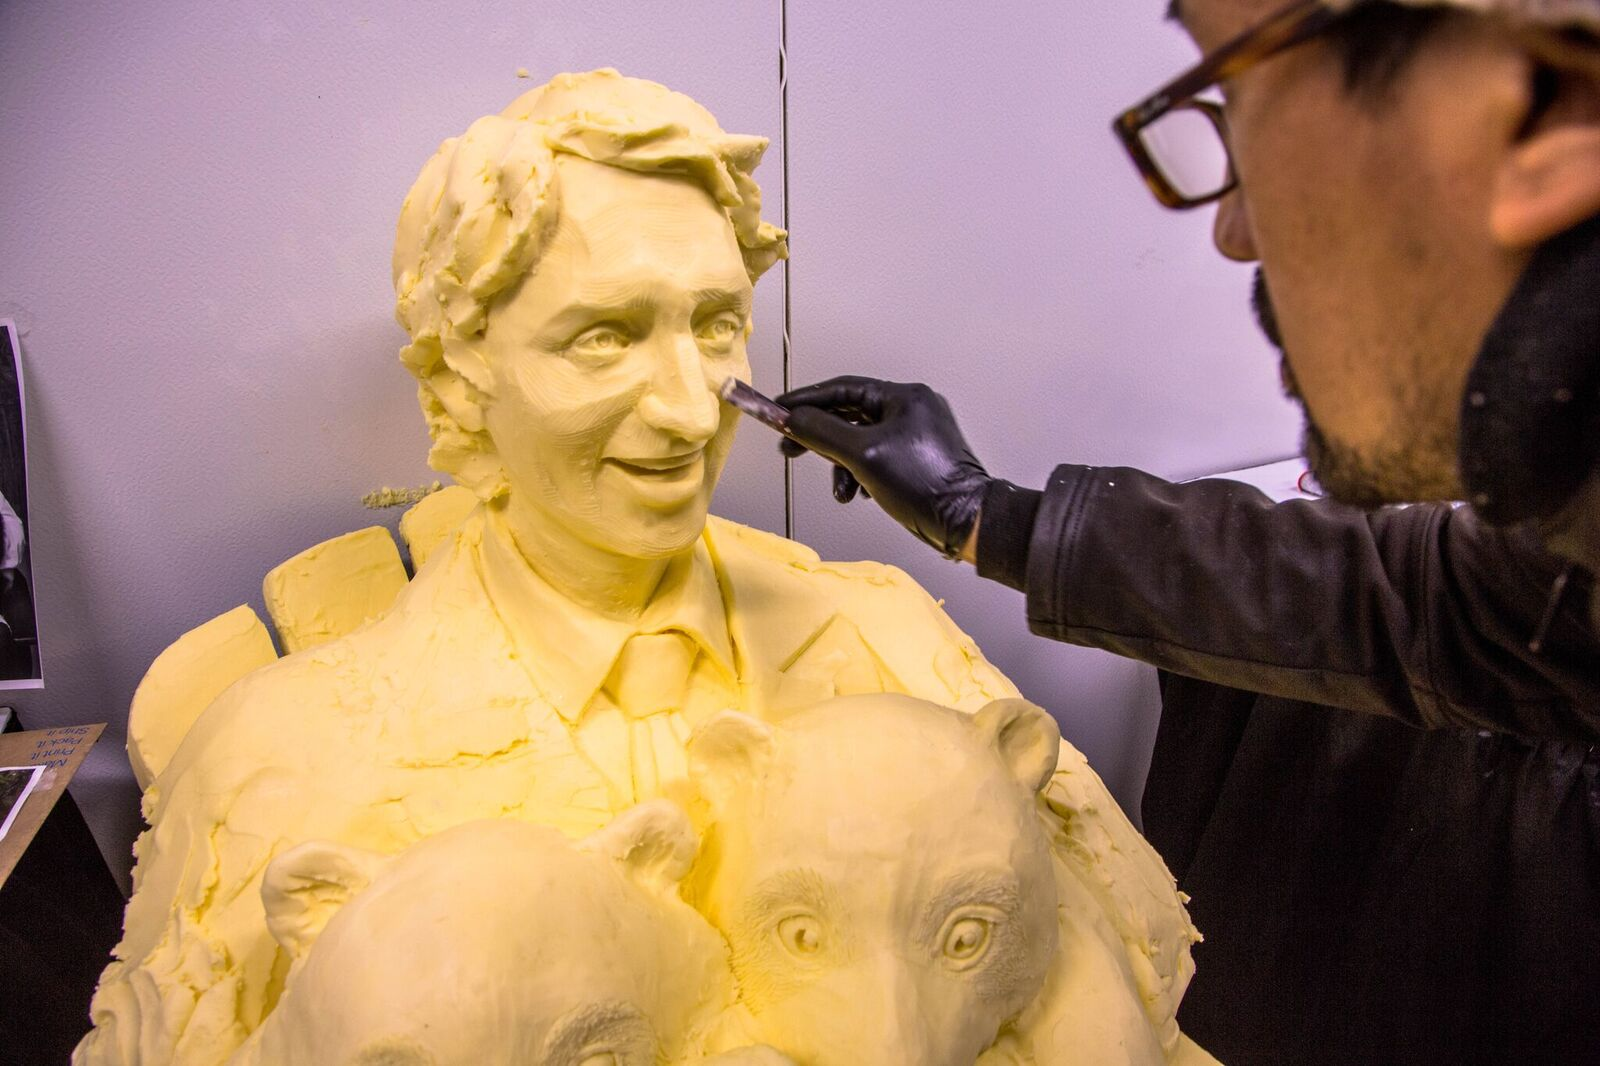 A butter sculpture of Justin Trudeau